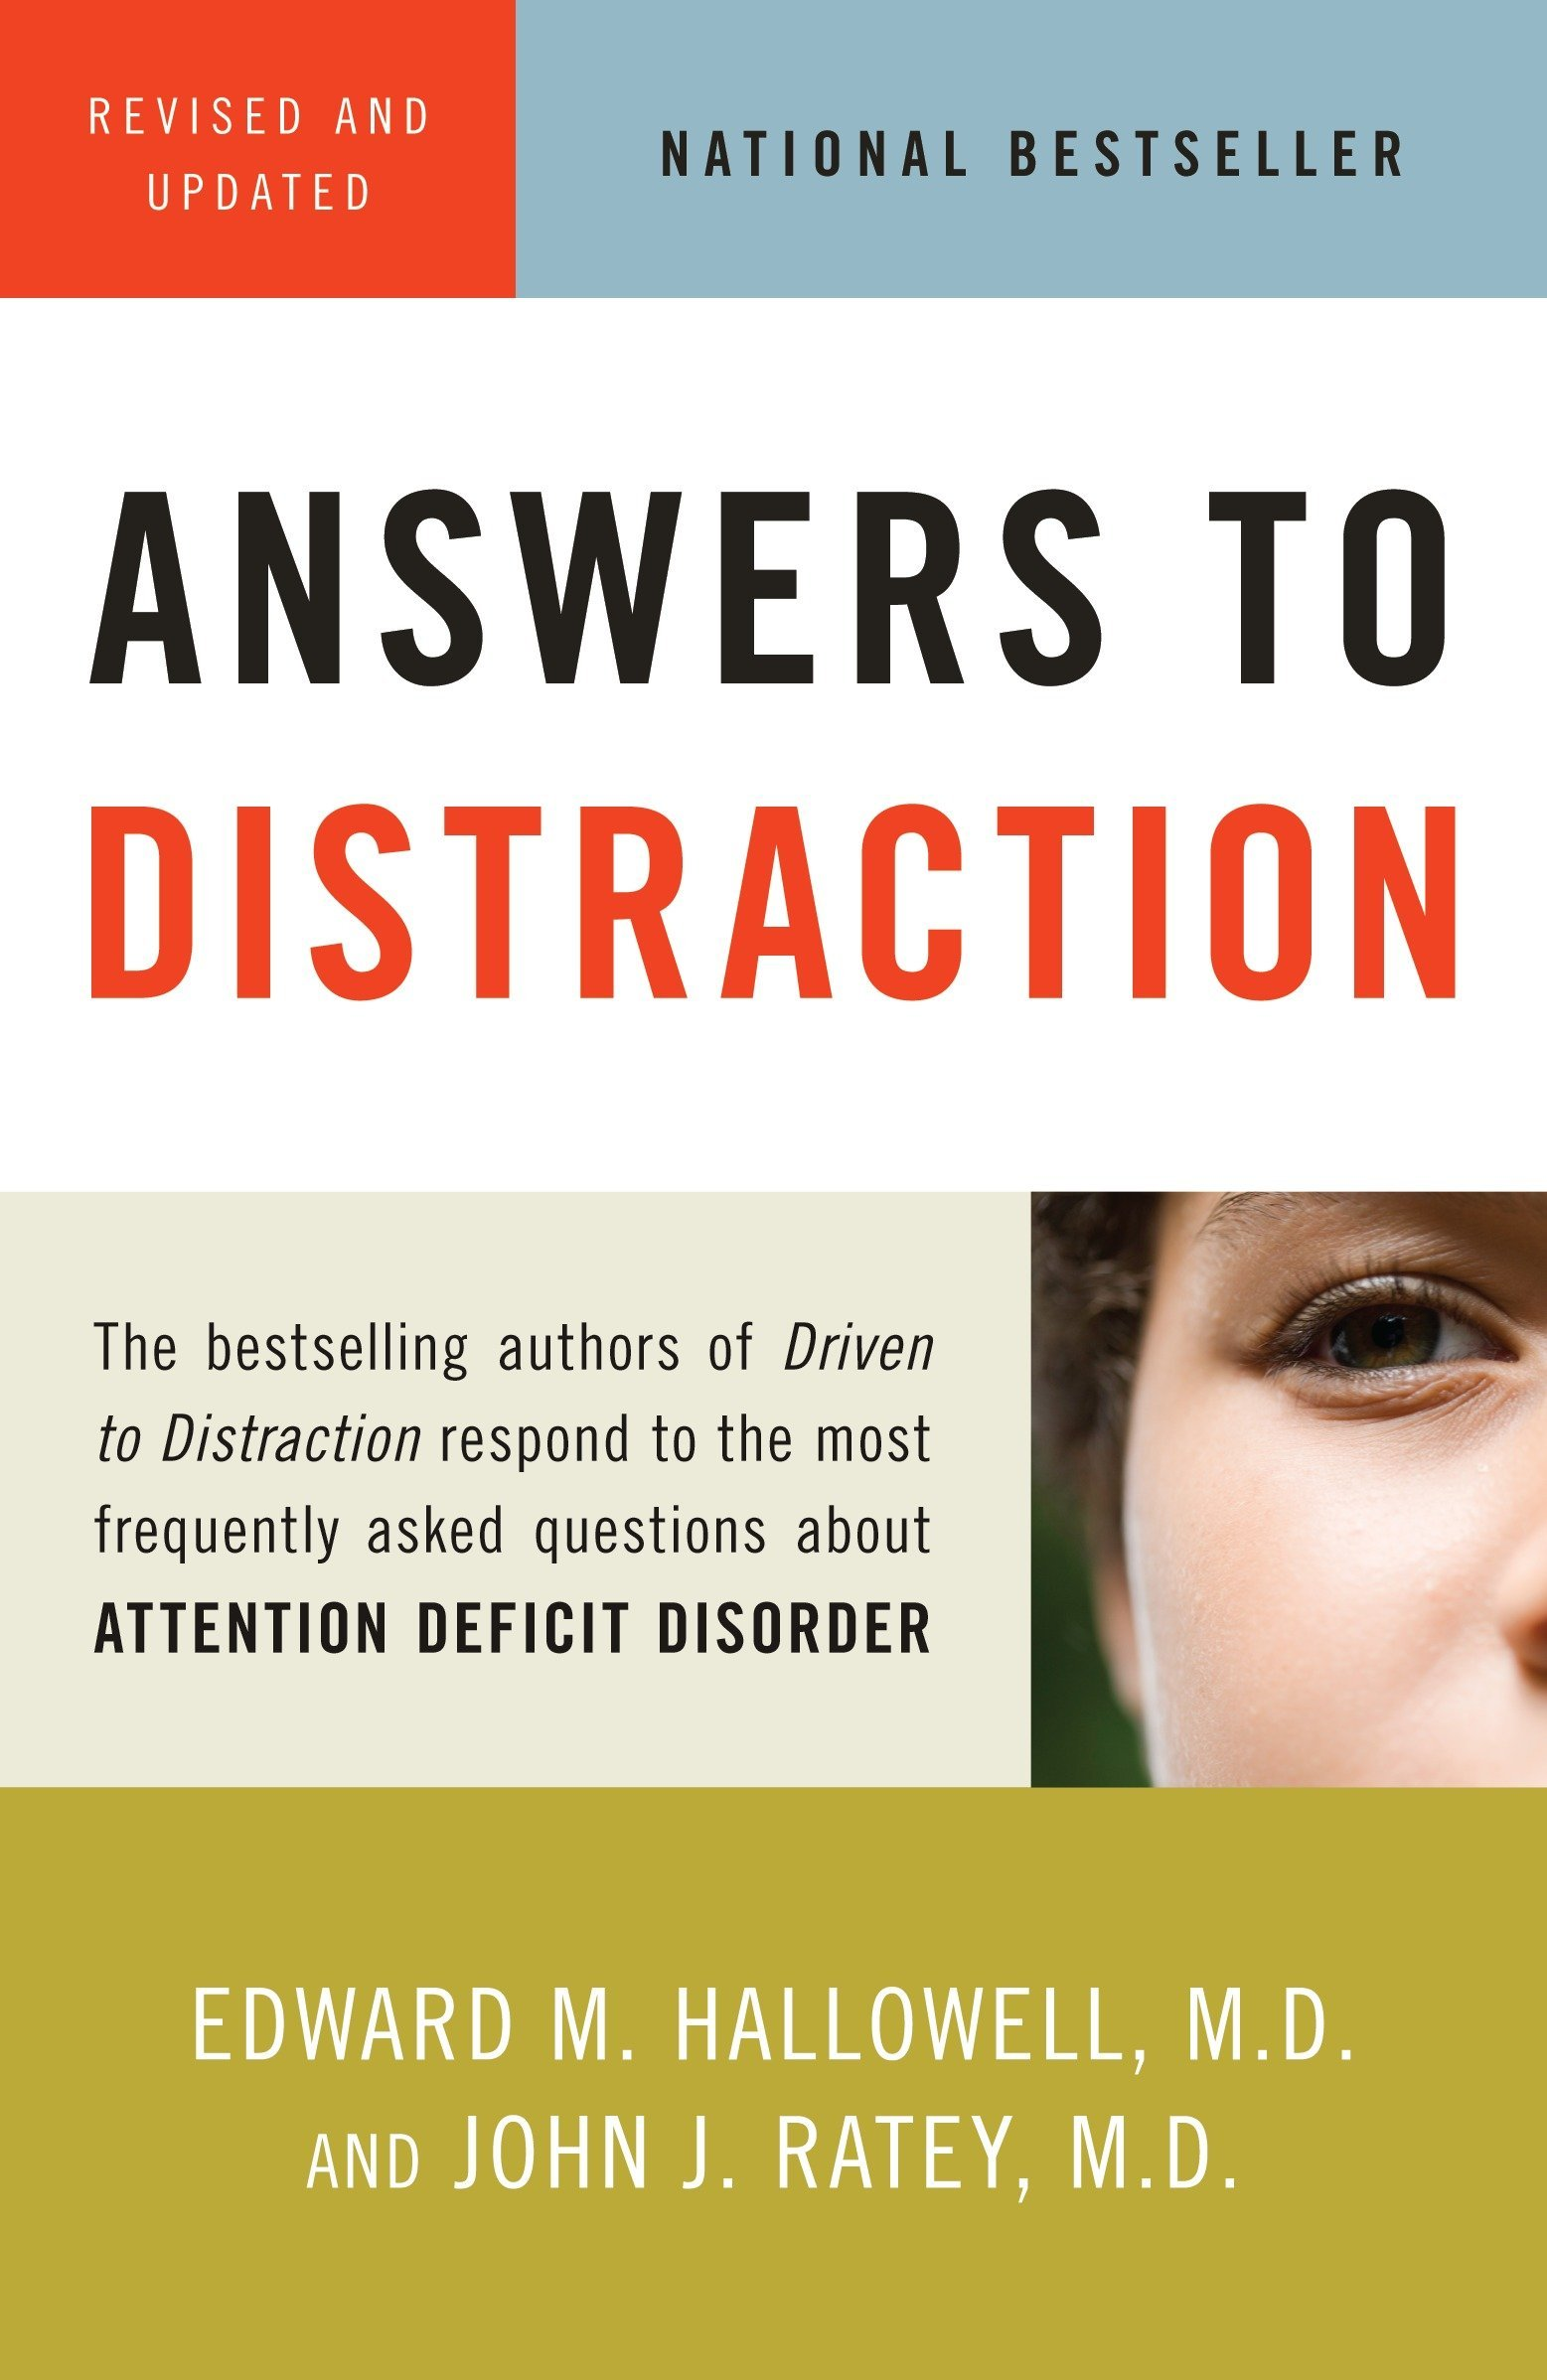 Answers To Distraction Edward M Hallowell Md John J Ratey Md